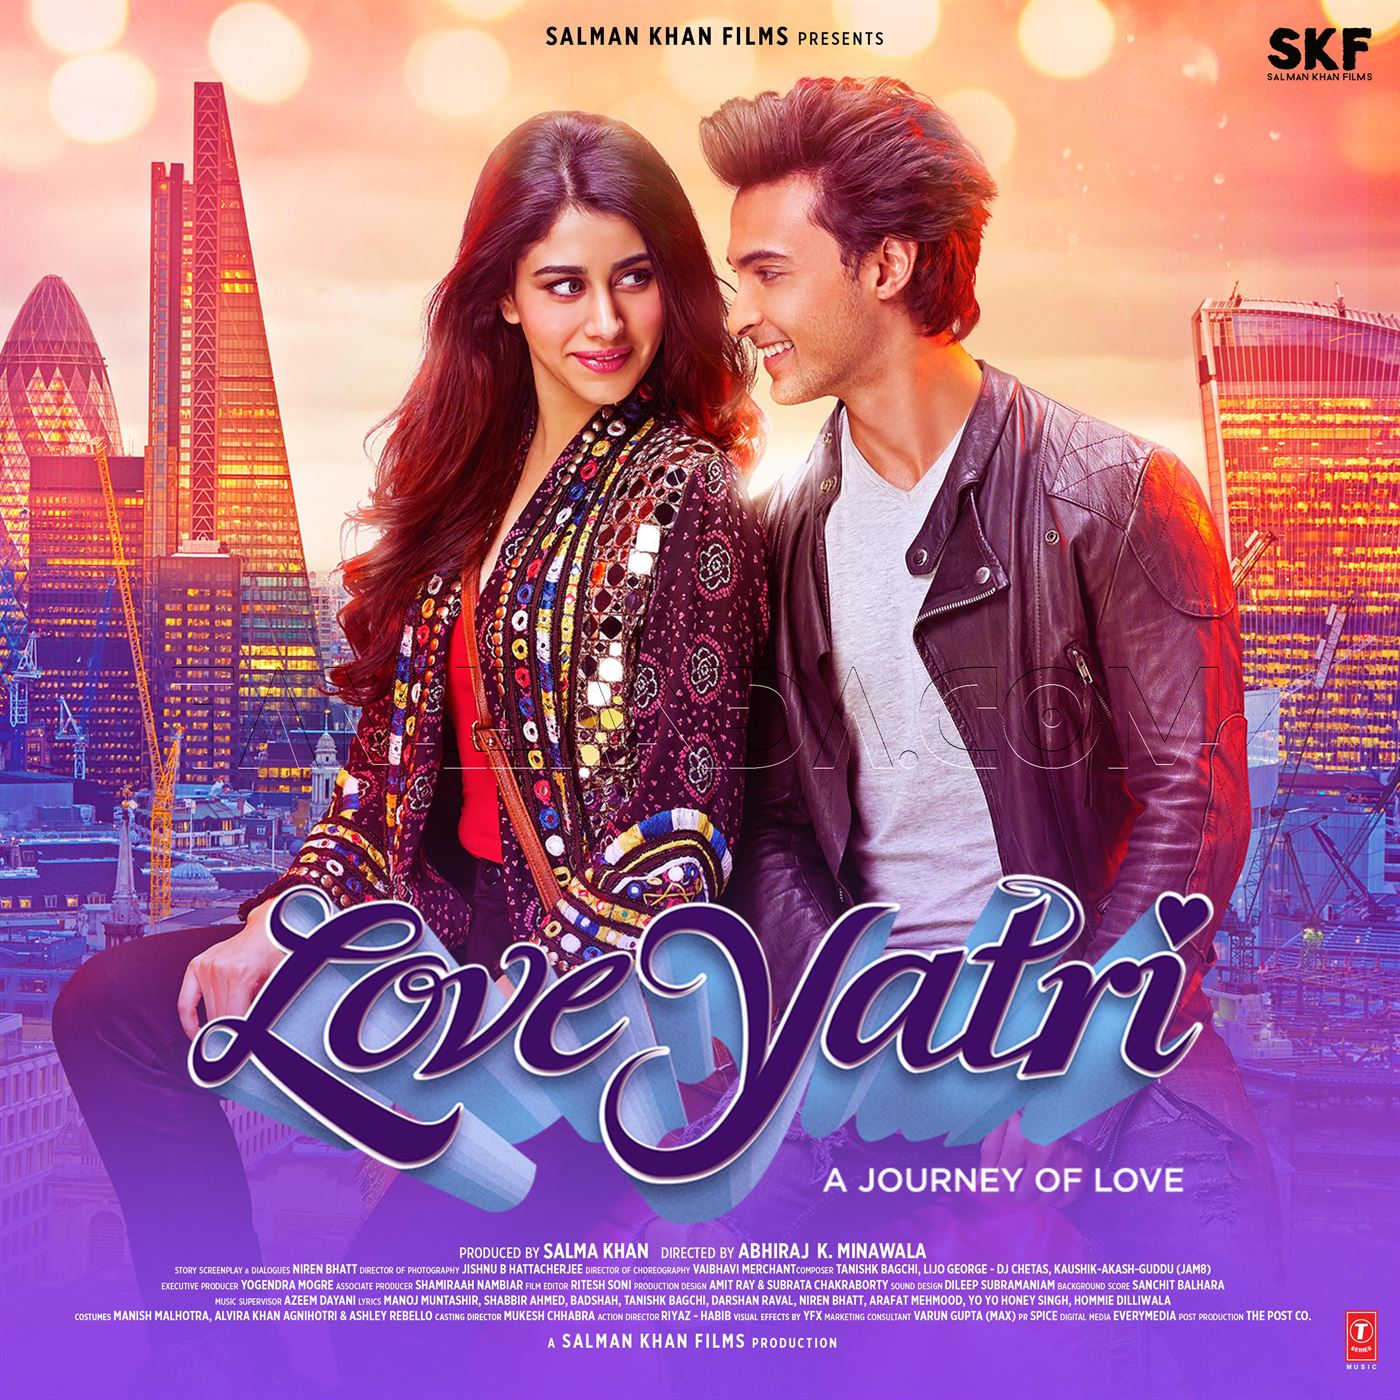 Loveyatri – A Journey of Love (2018) FLAC Songs [ACD RIP]